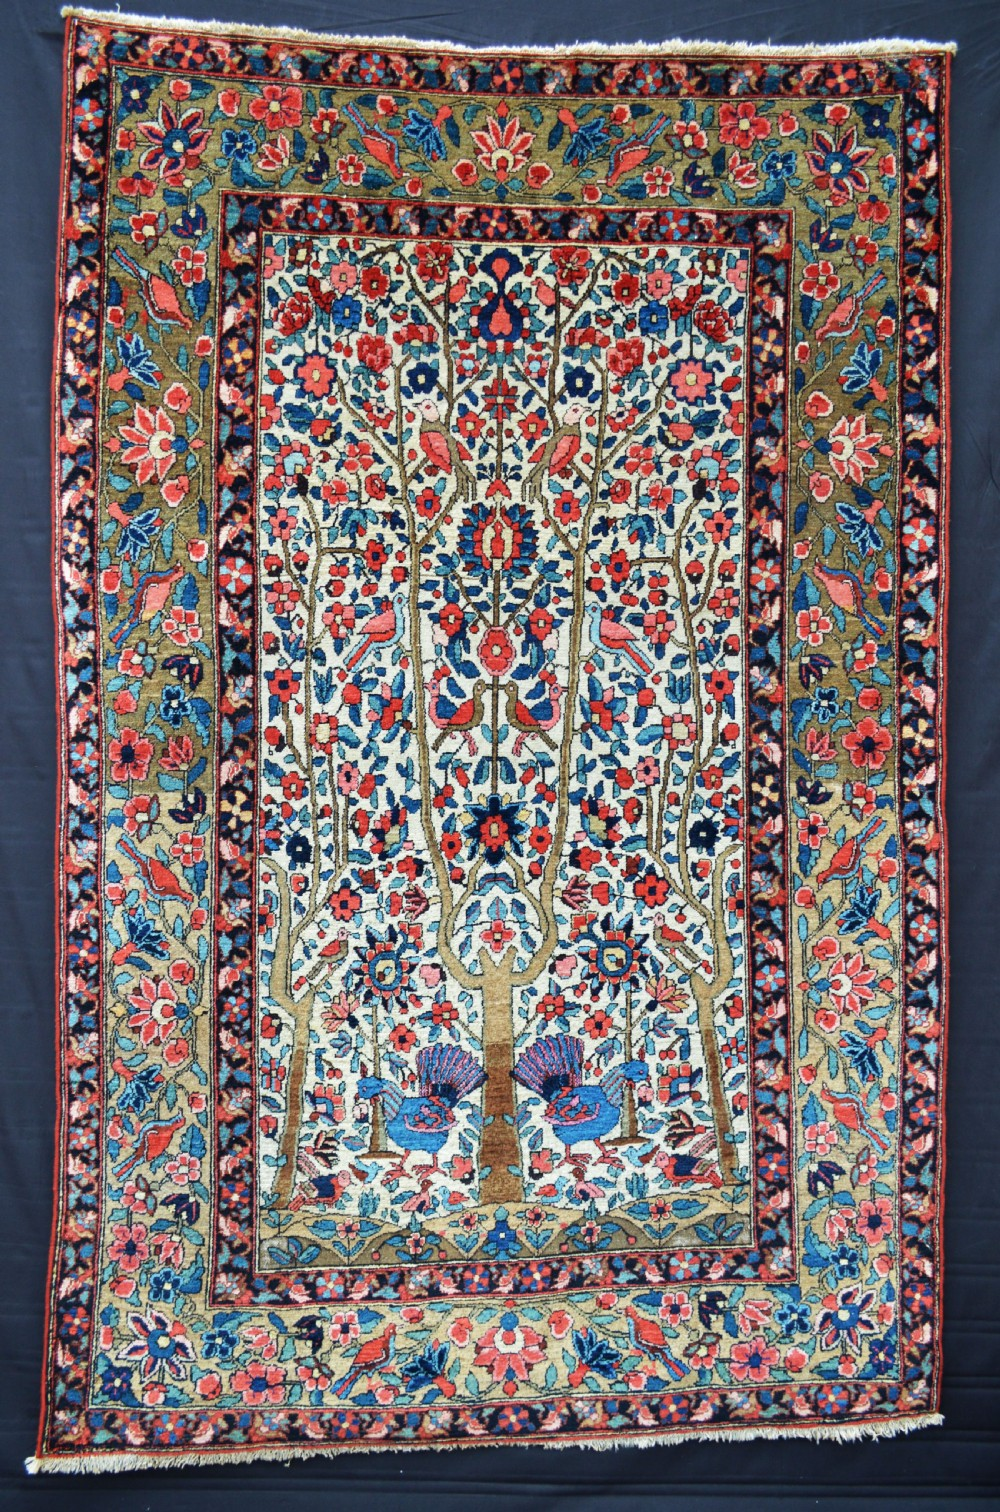 antique bakhtiari rug the chahar mahal western persia